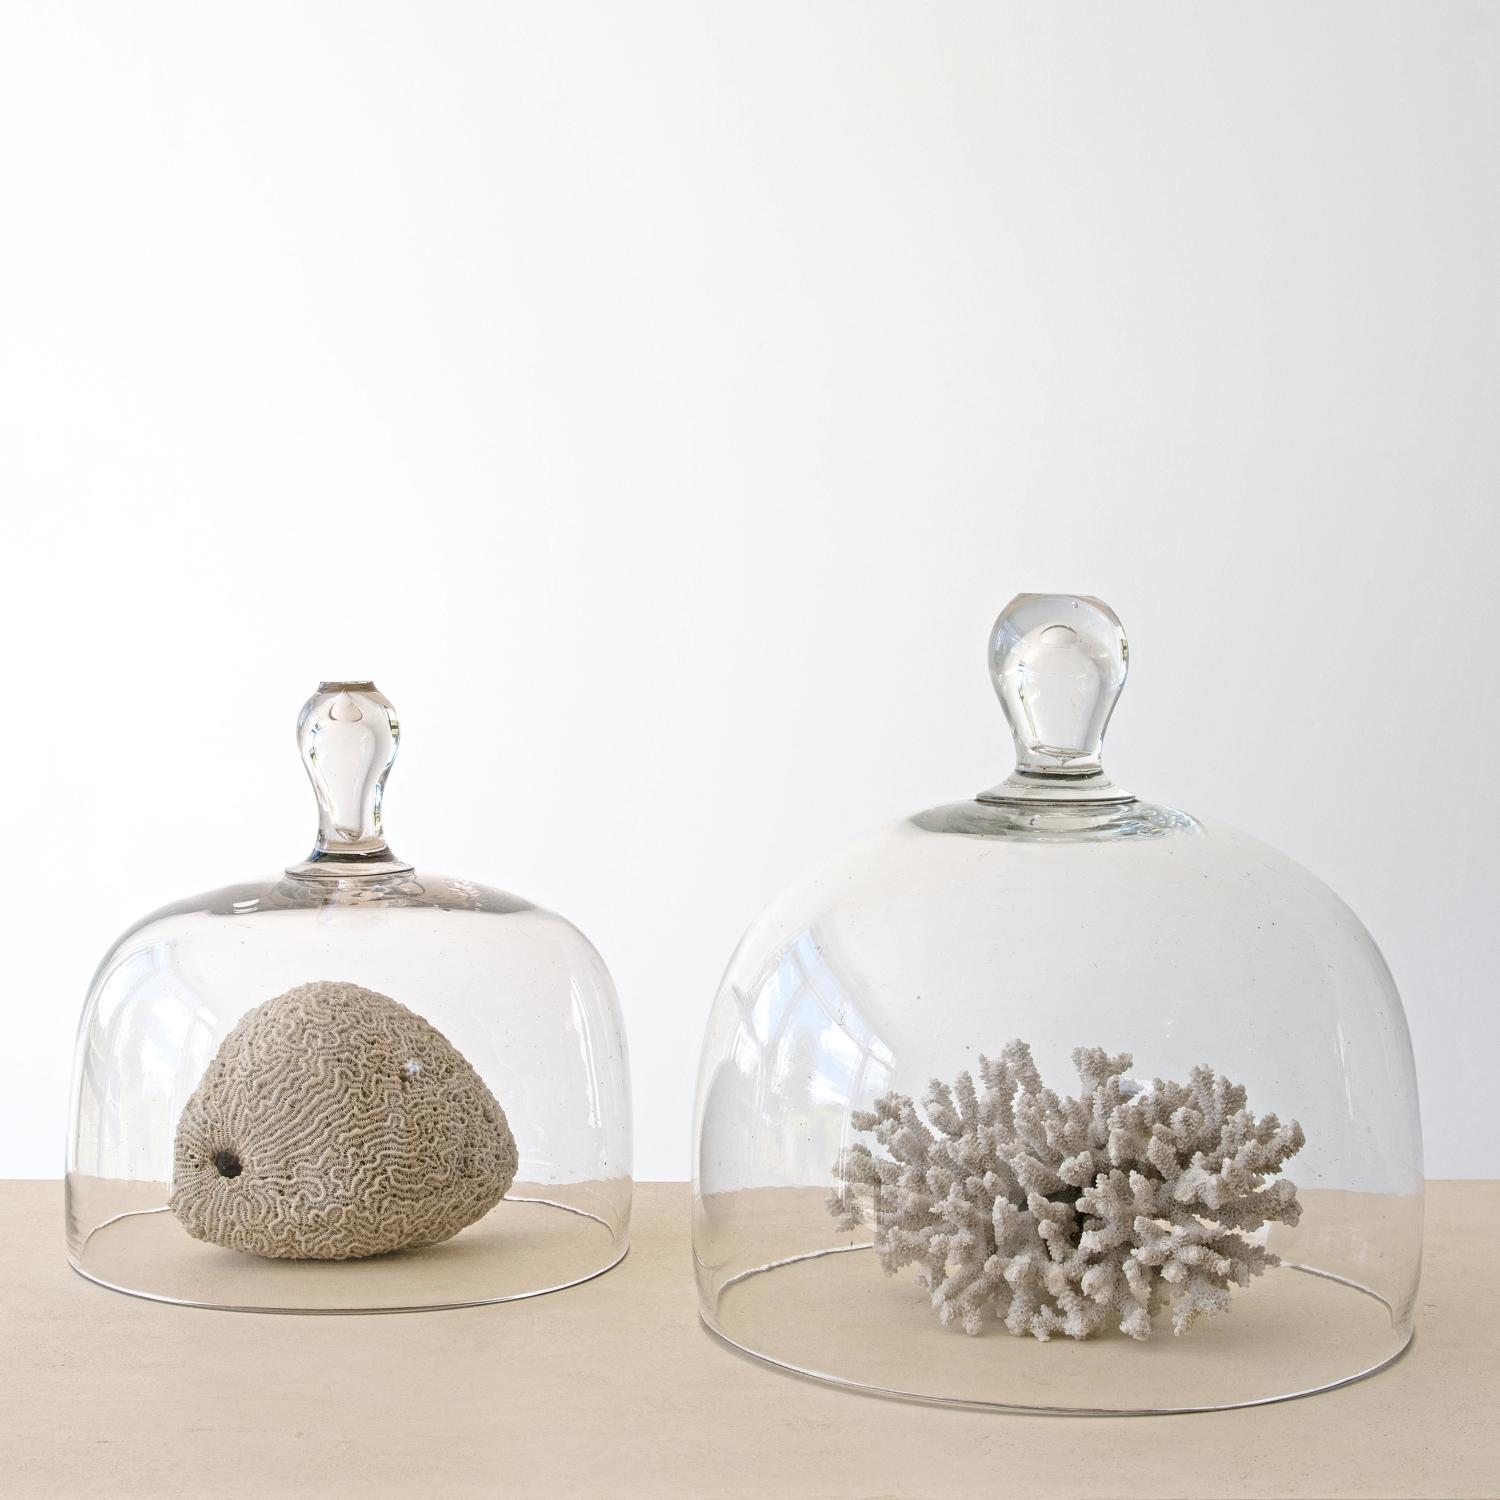 ANTIQUE FRENCH CLOCHES